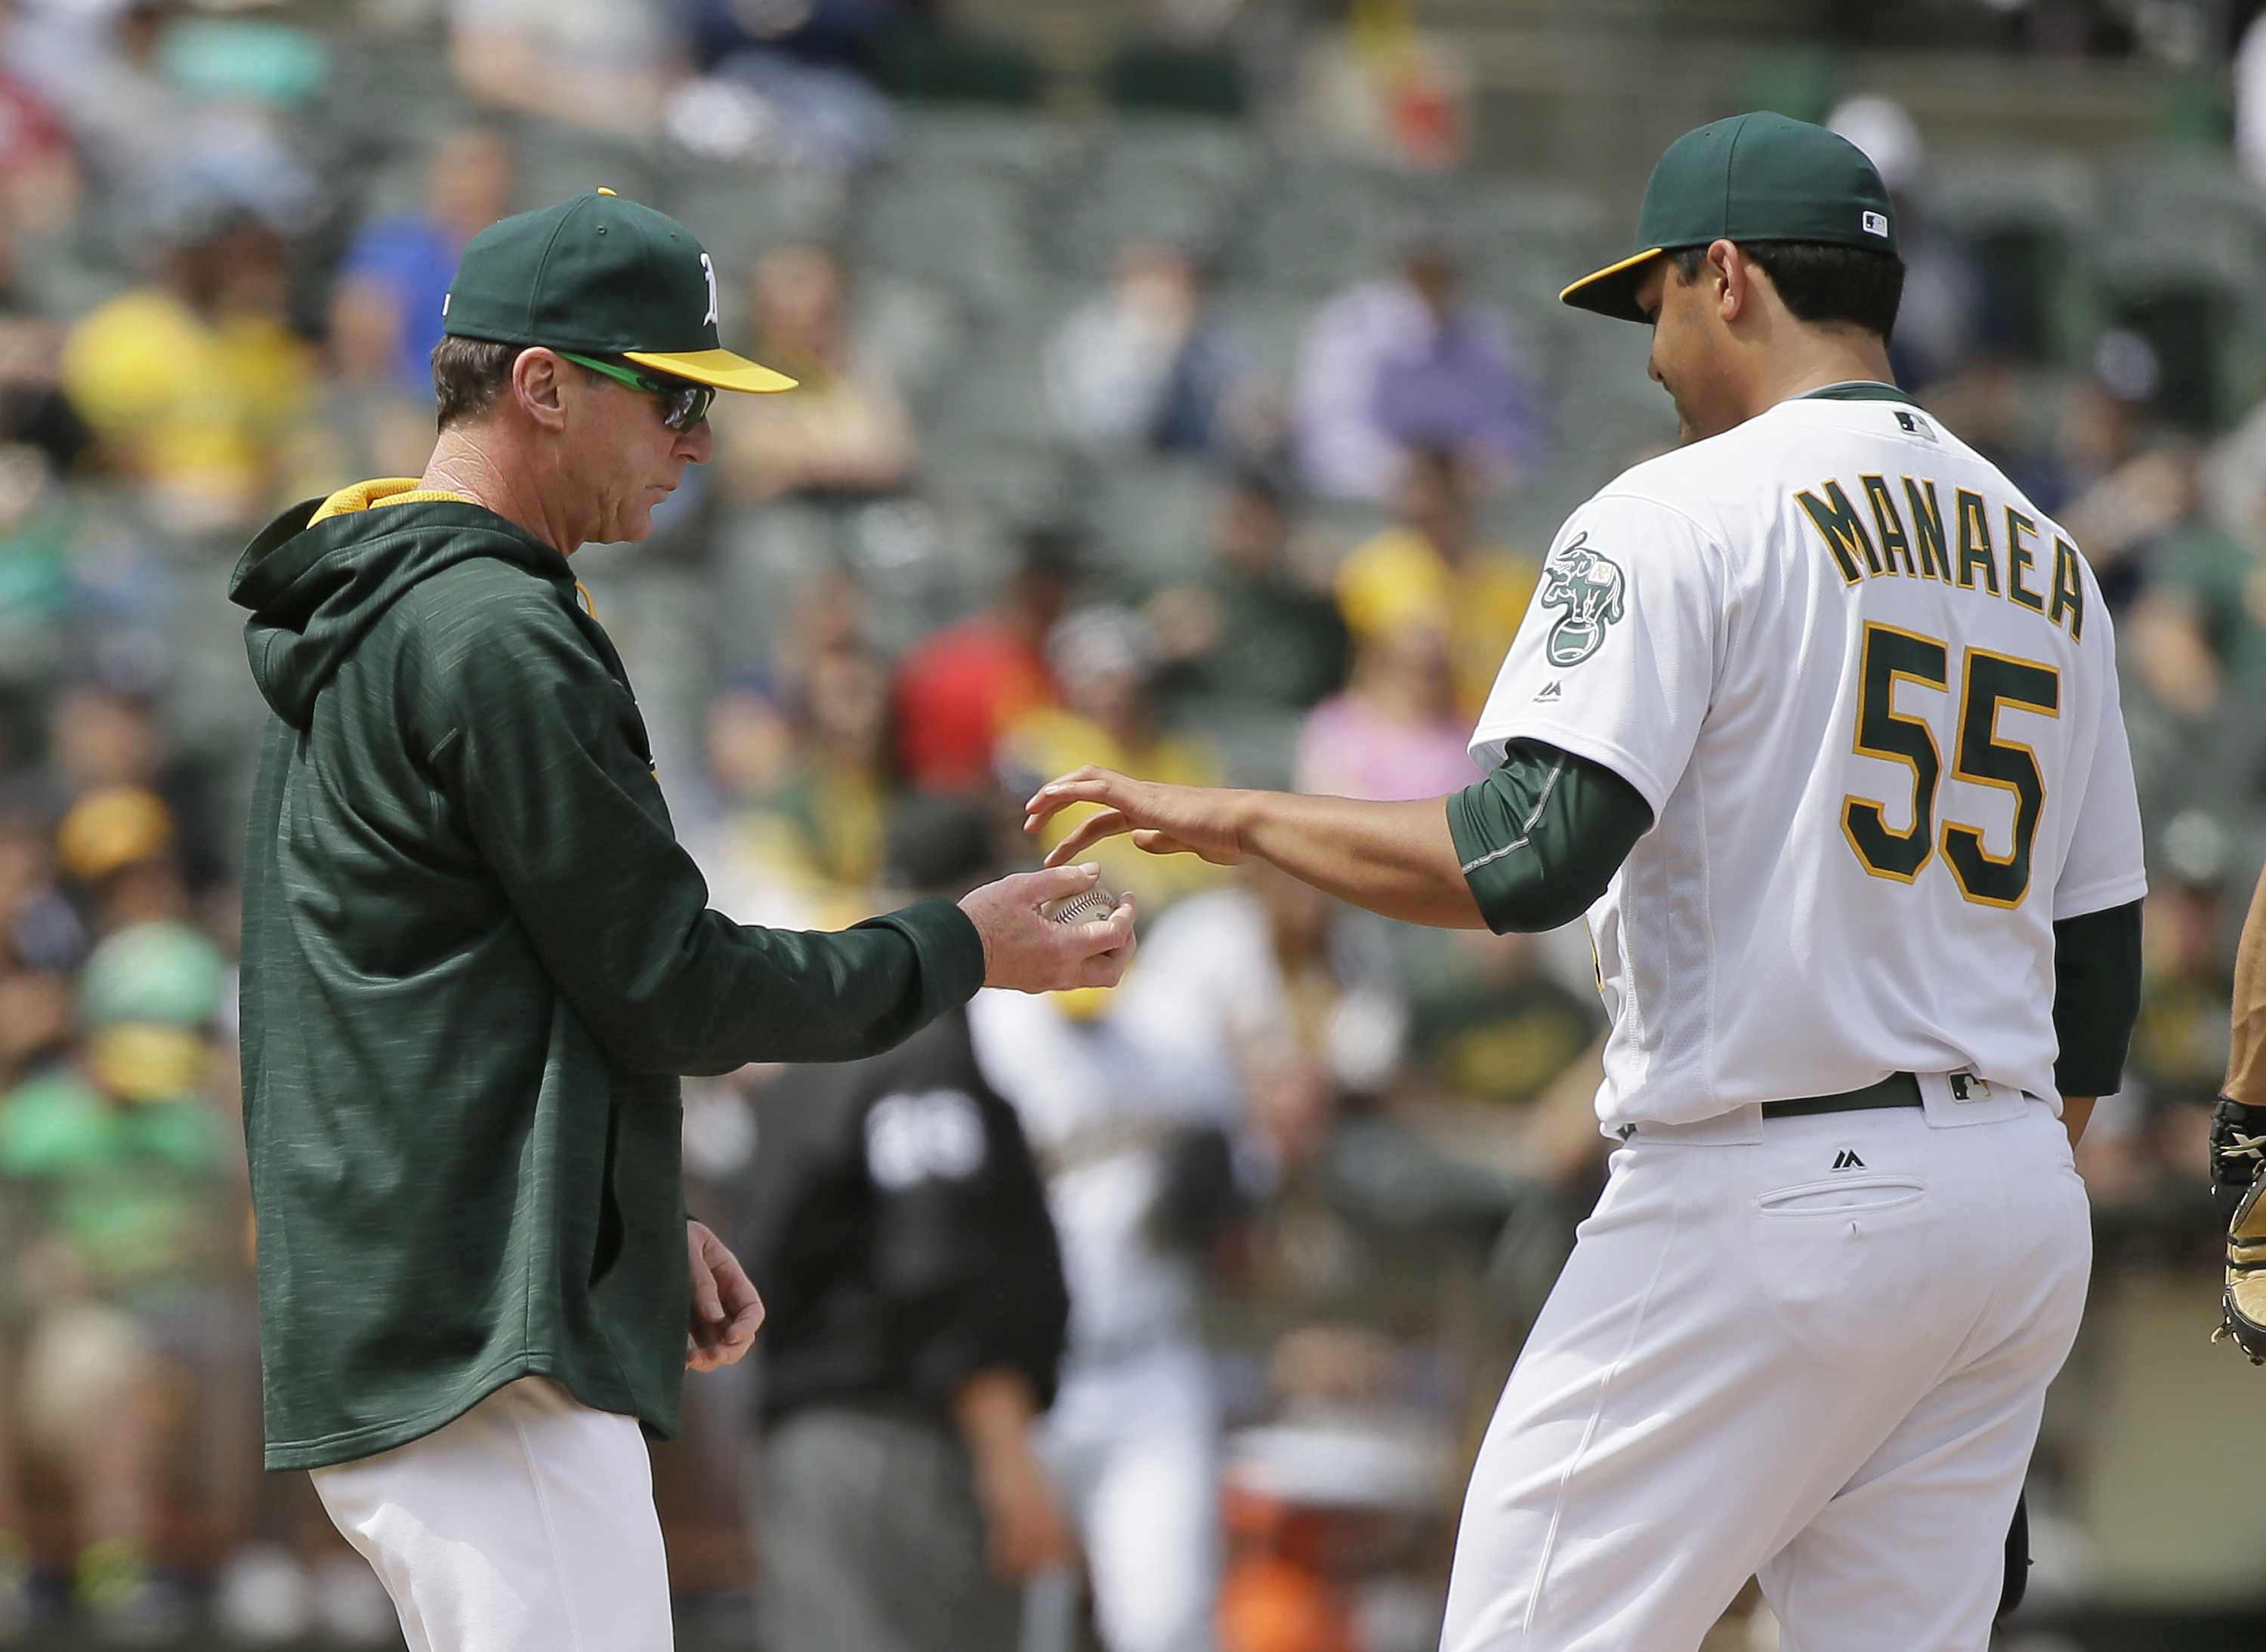 Oakland Athletics manager Bob Melvin, left, takes the ball from starting pitcher Sean Manaea, right, while removing him in the seventh inning of a baseball game against the New York Yankees, Saturday, May 21, 2016, in Oakland, Calif. (AP Photo/Eric Risber